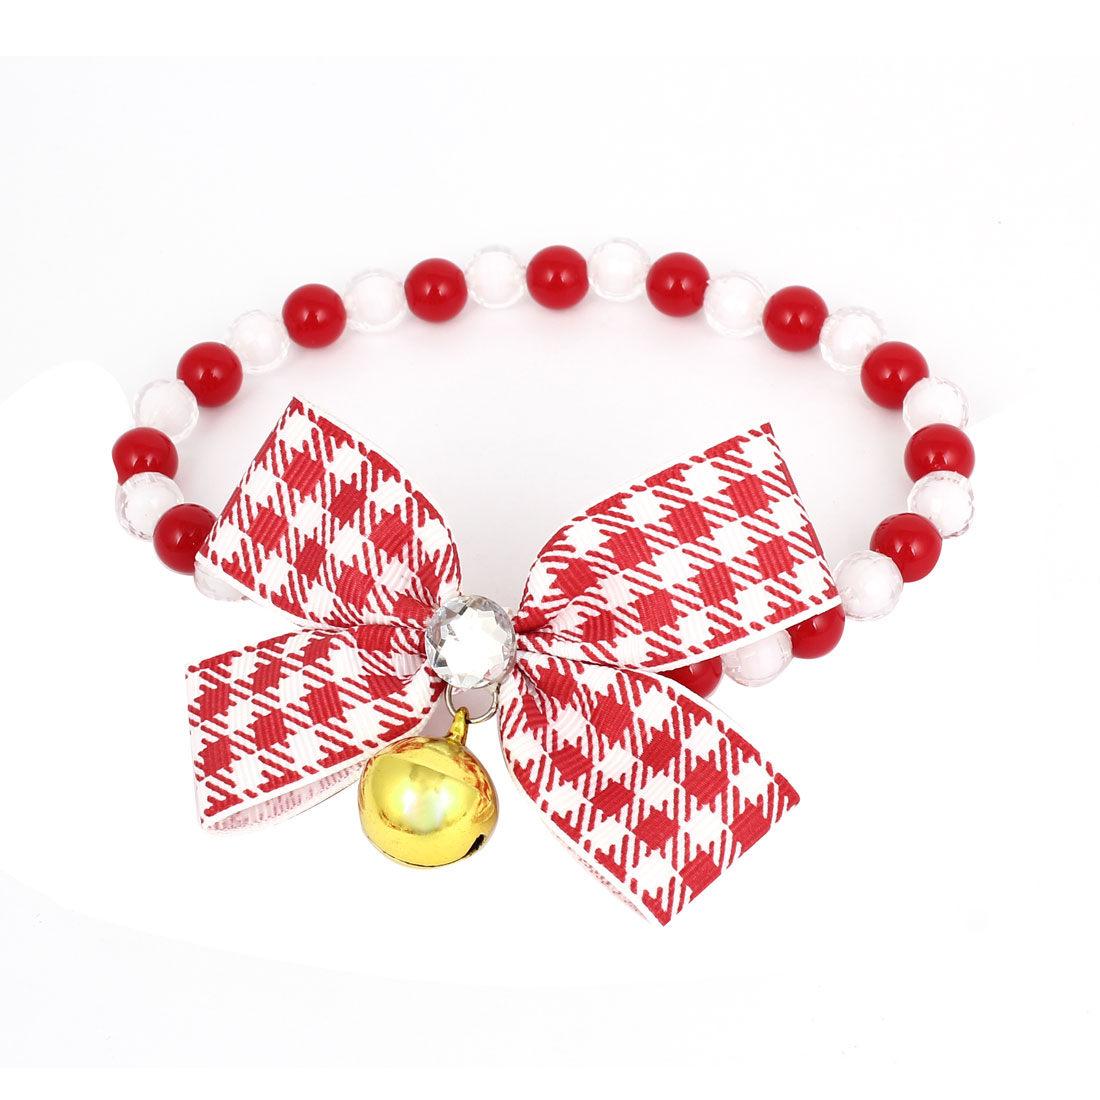 Metal Bell Pendant Bowtie Accent Pet Dog Plastic Beads Collar Necklace Red White L